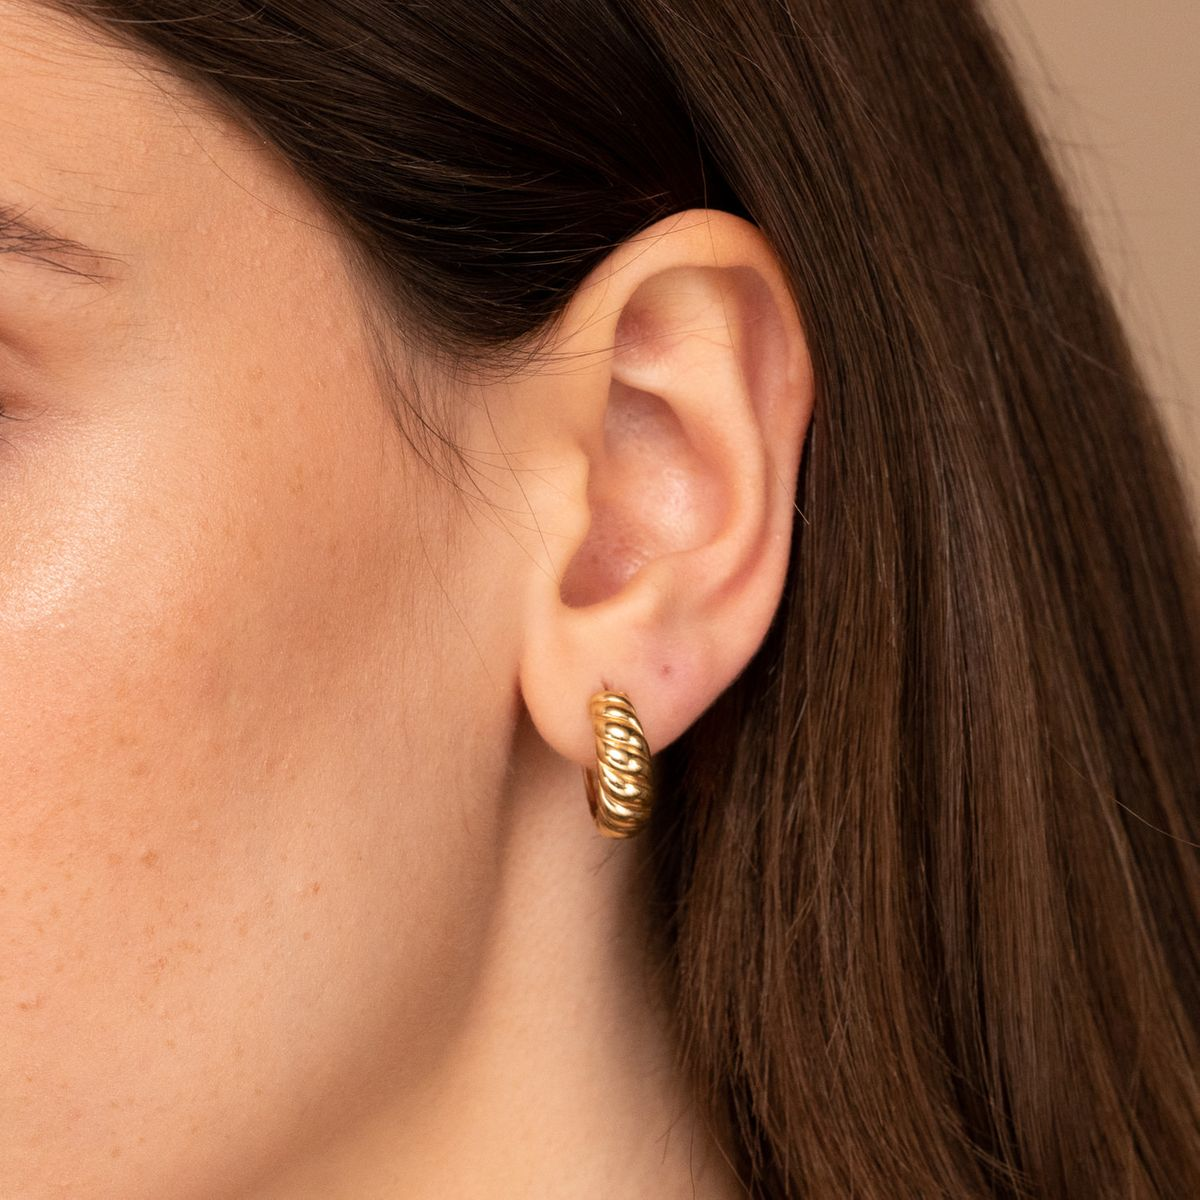 This Expert Jewelry Advice Is The Best You'll Find